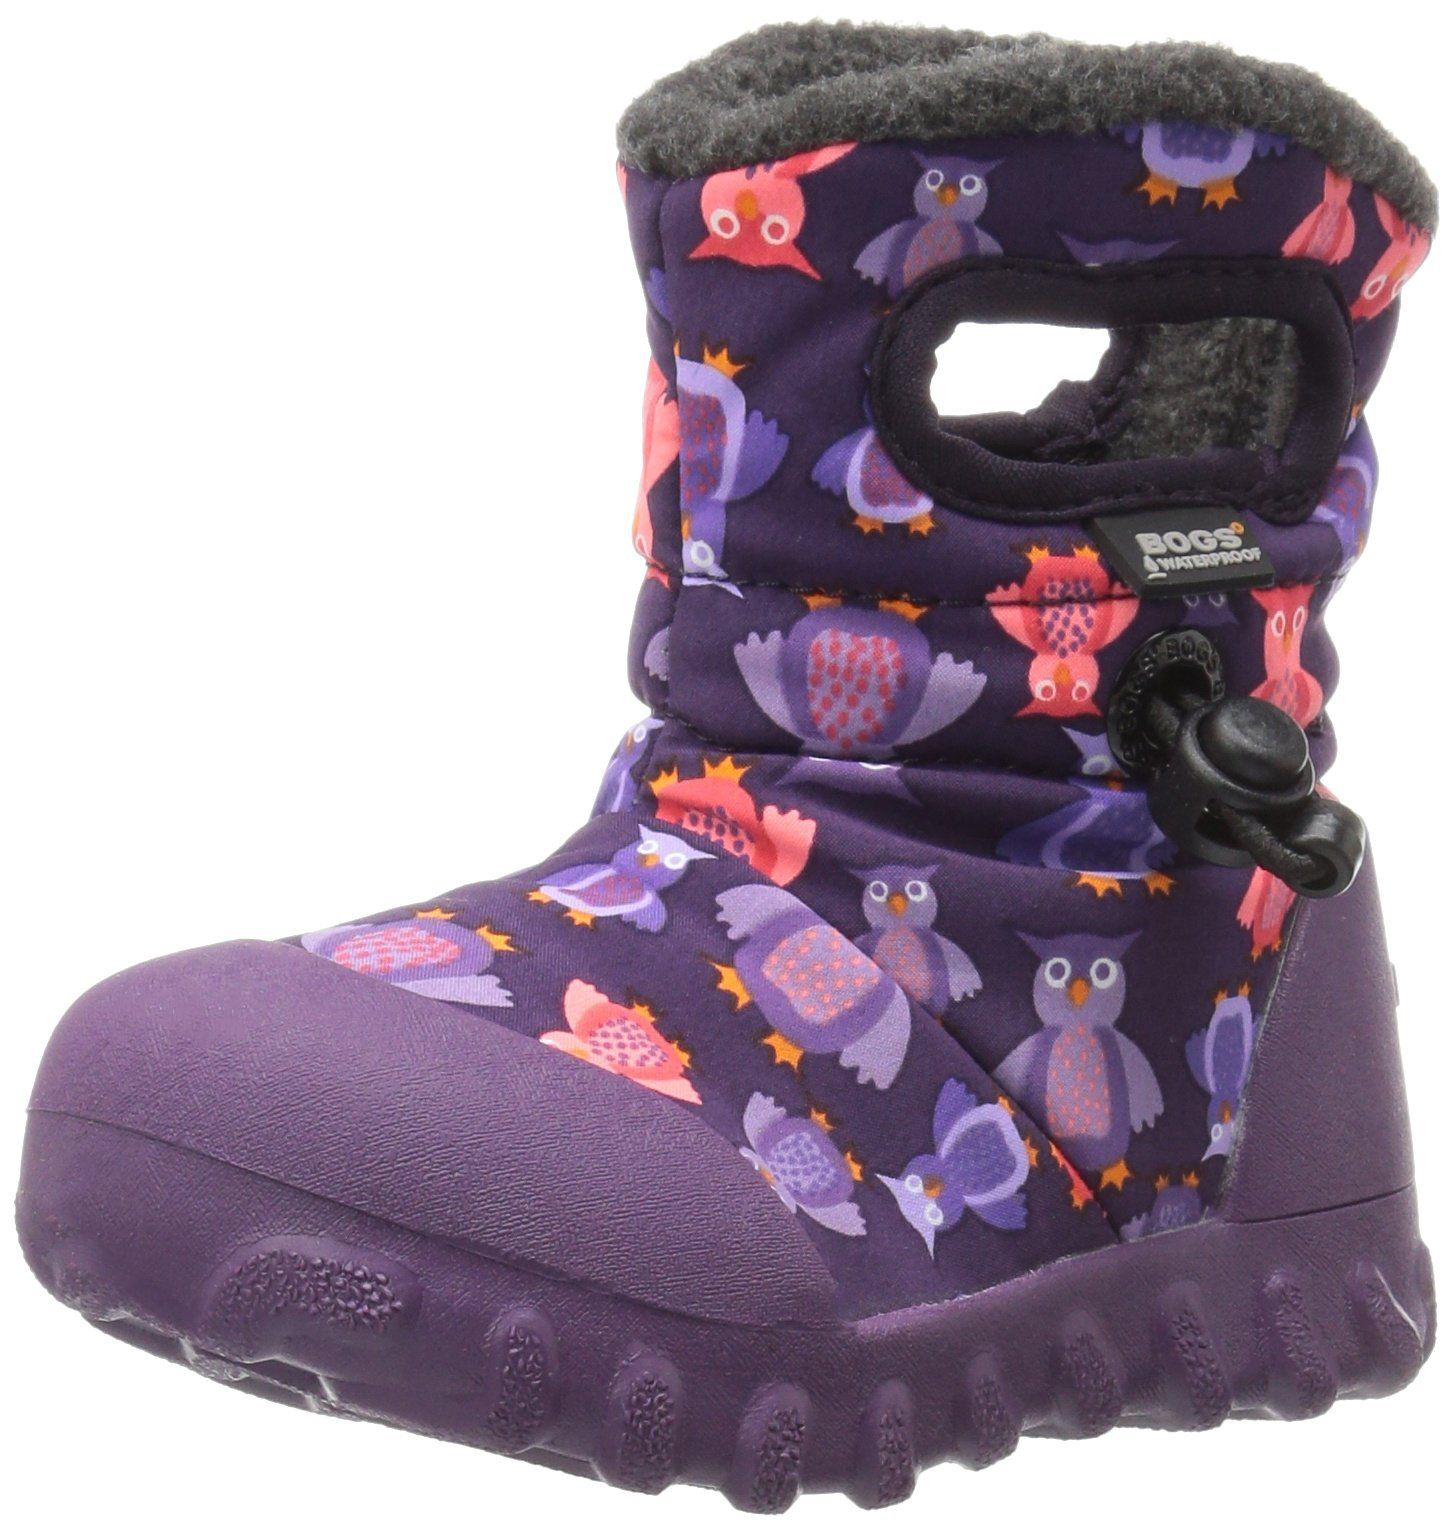 Bogs baby bmoc puff owl winter snow boot toddler purplemulti